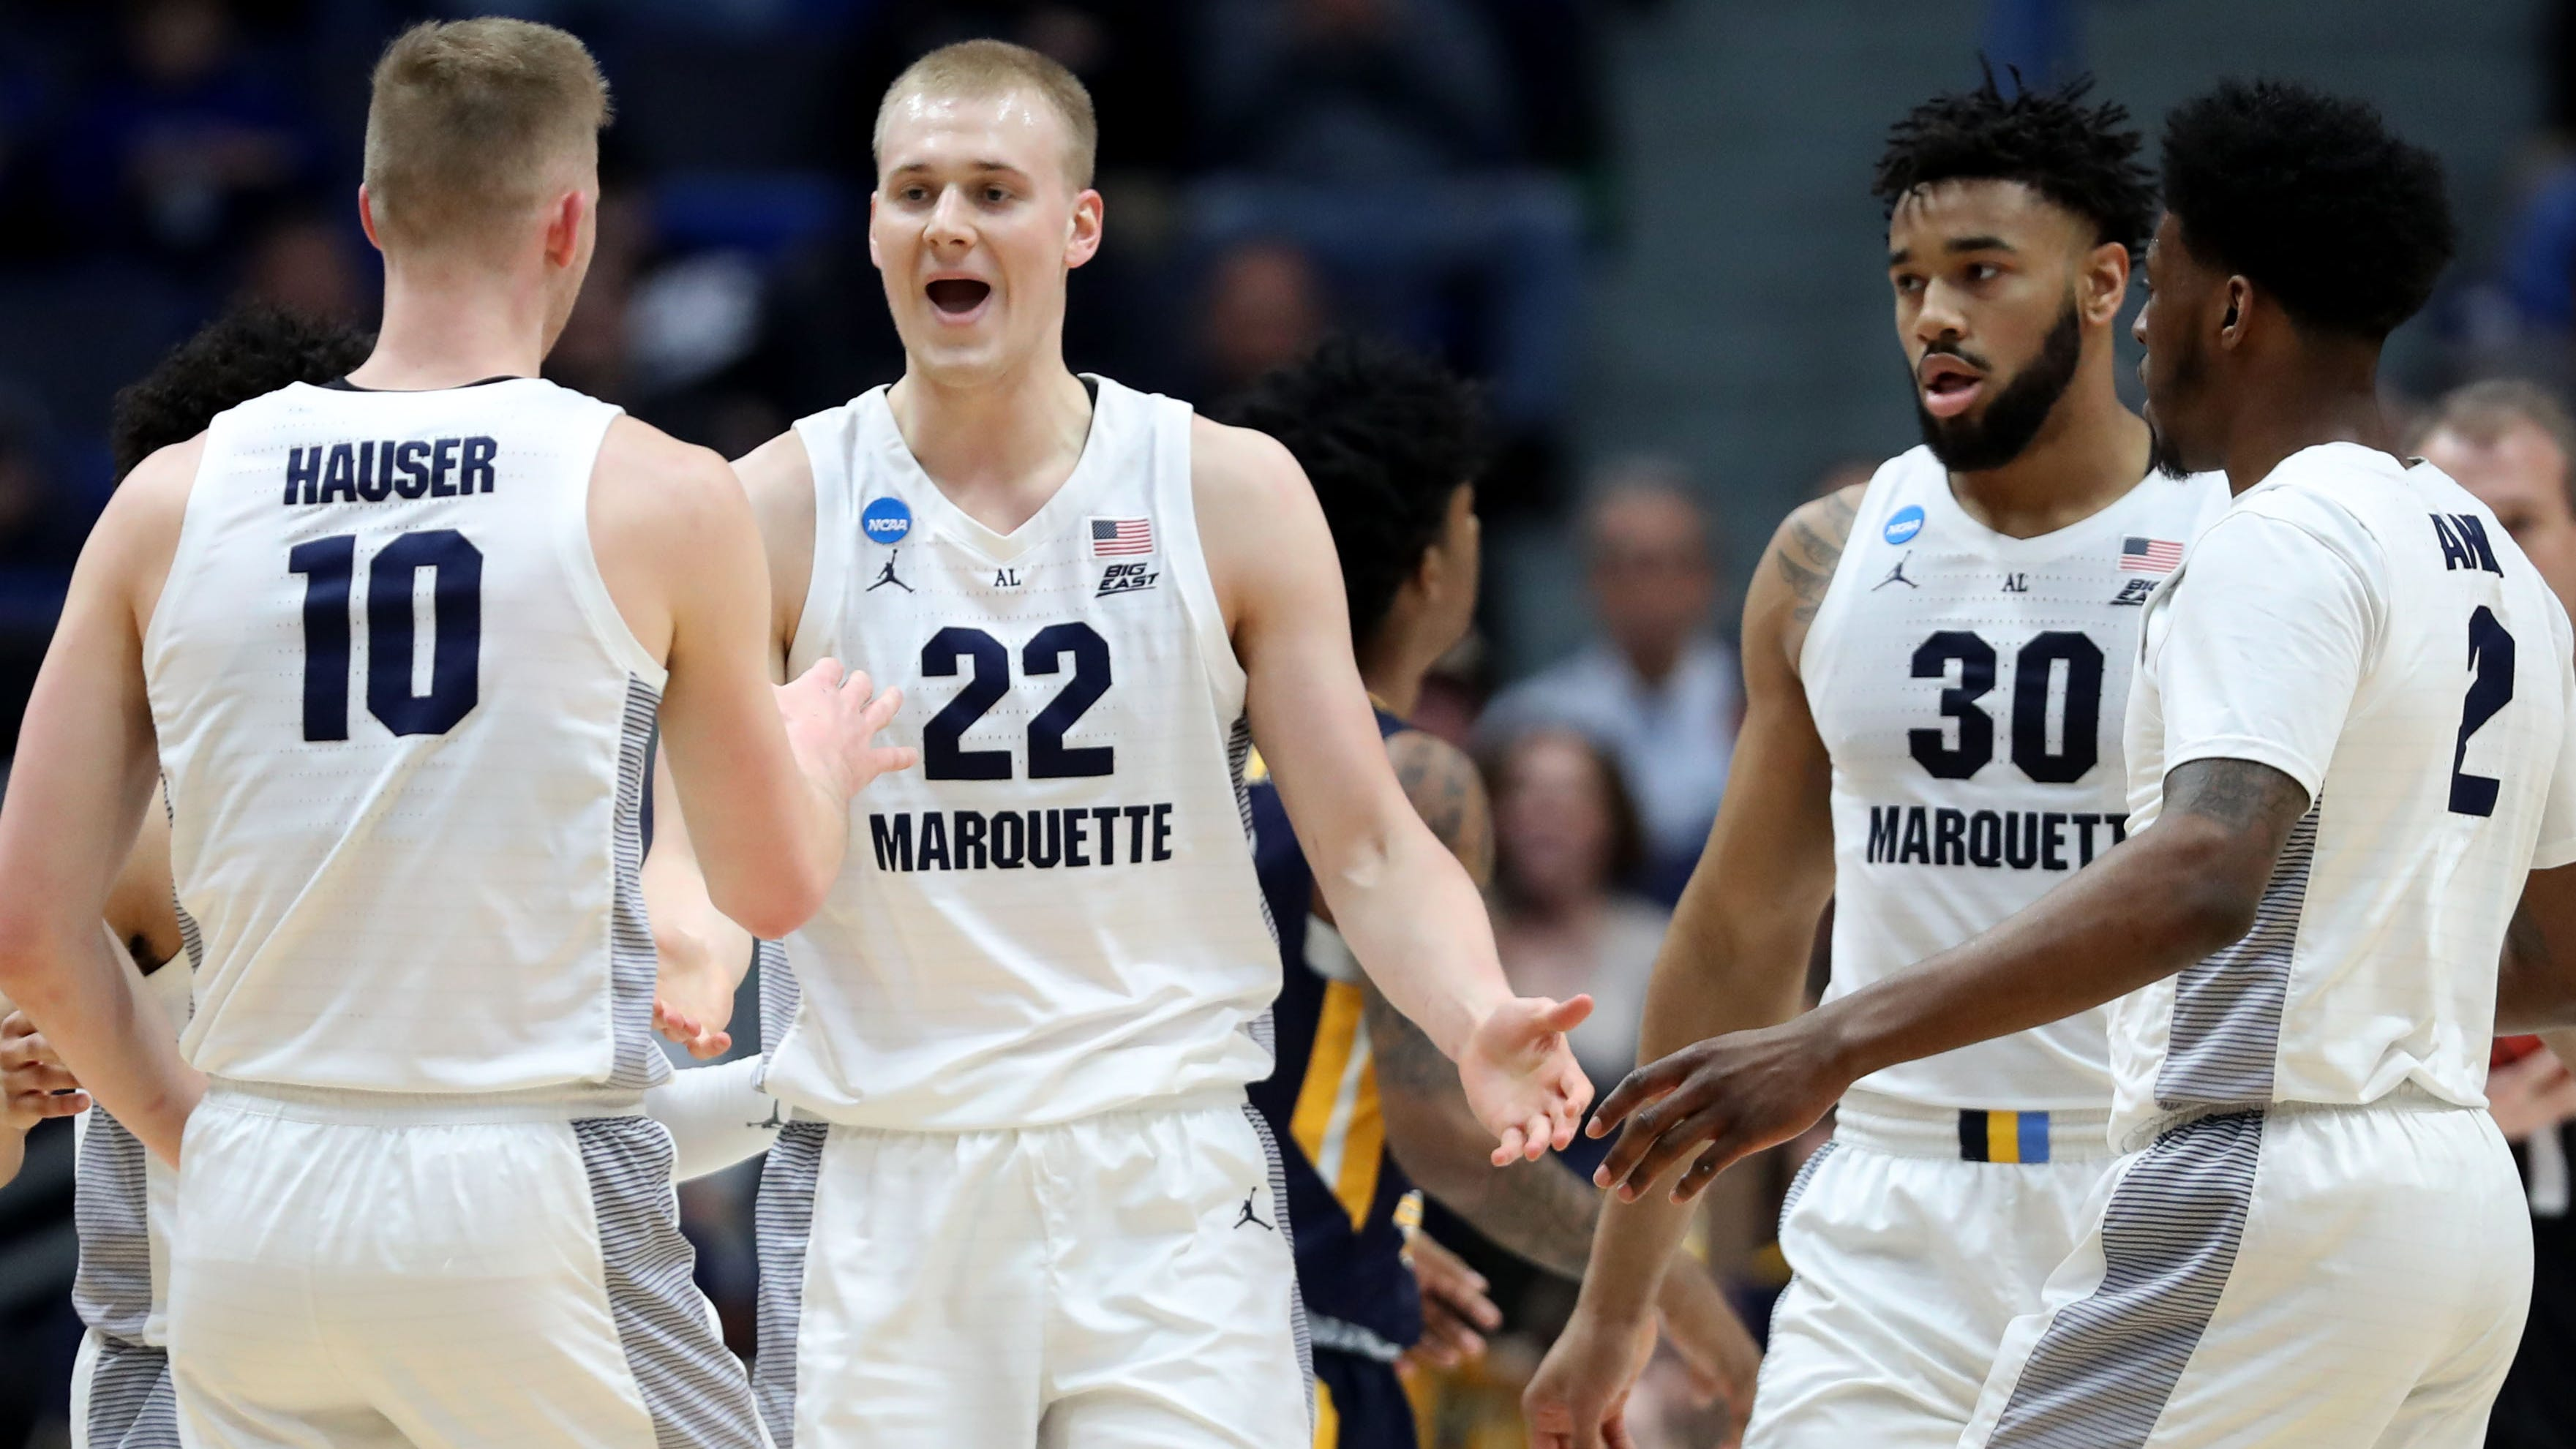 Report: Marquette transfers Sam and Joey Hauser set to visit Iowa